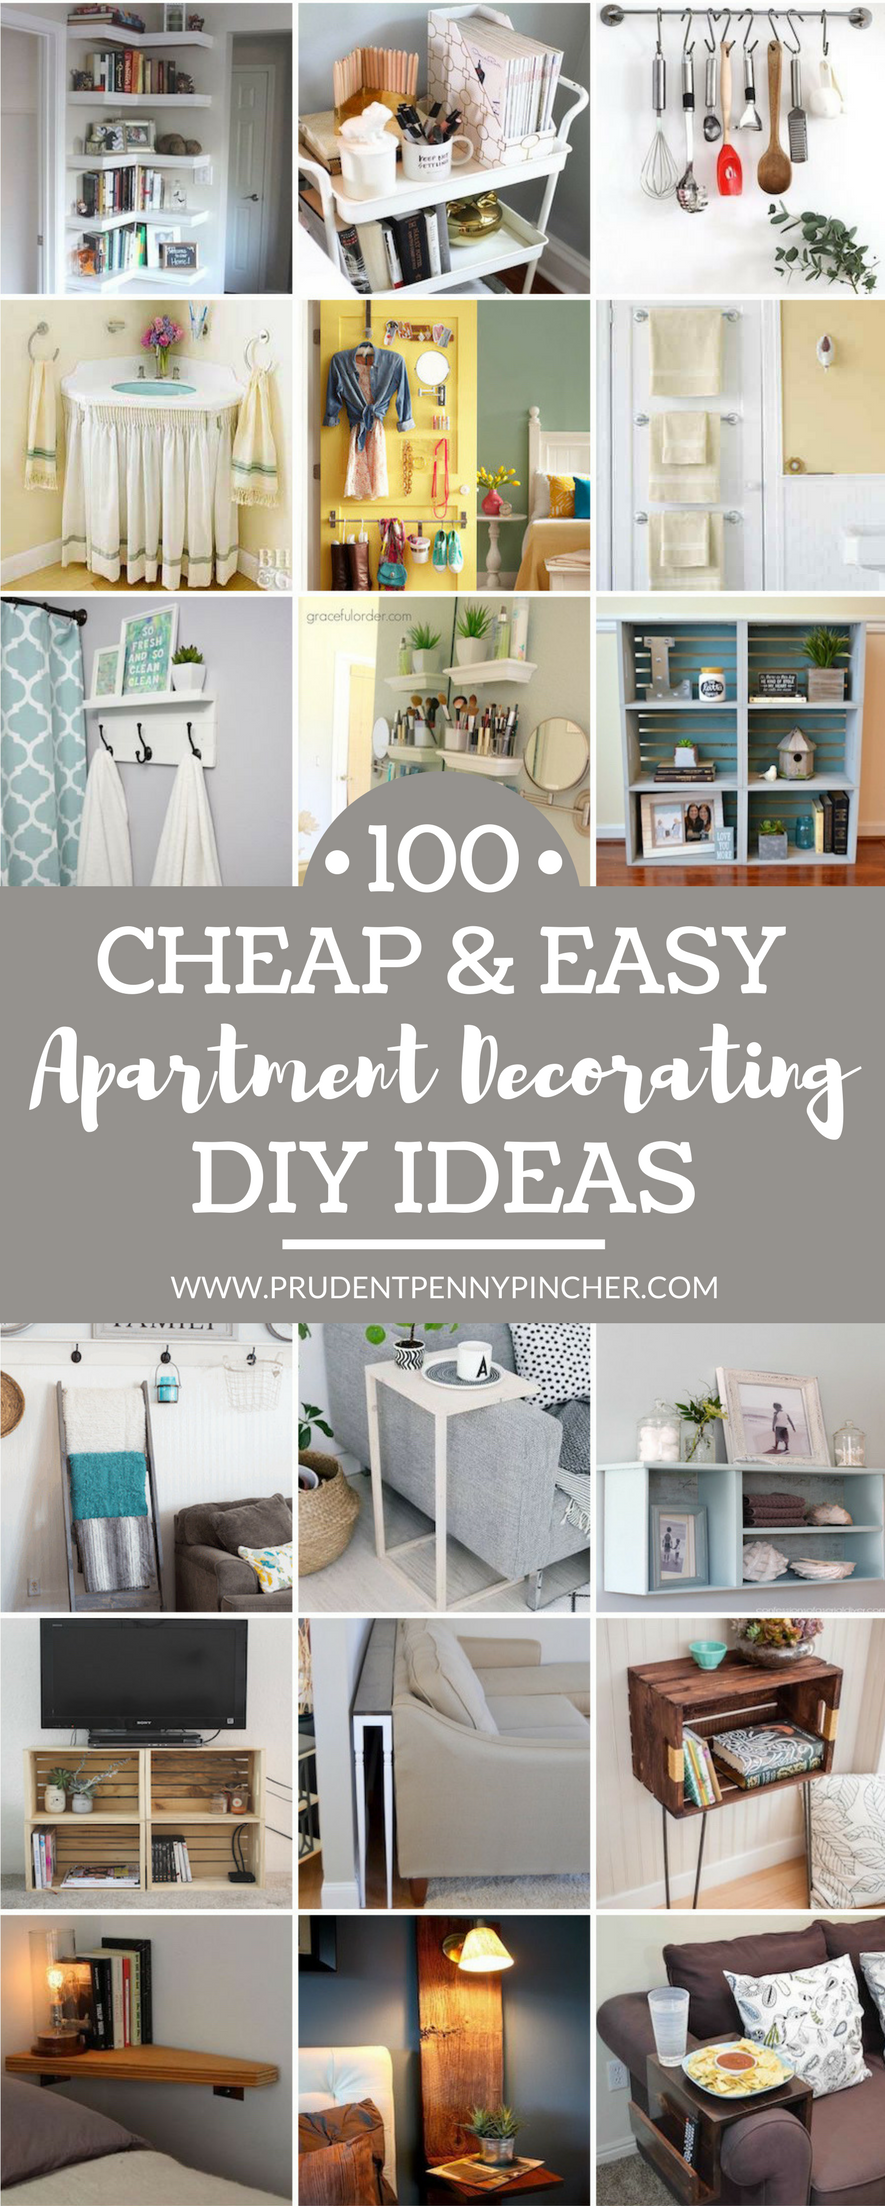 Elegant 100 Cheap And Easy DIY Apartment Decorating Ideas